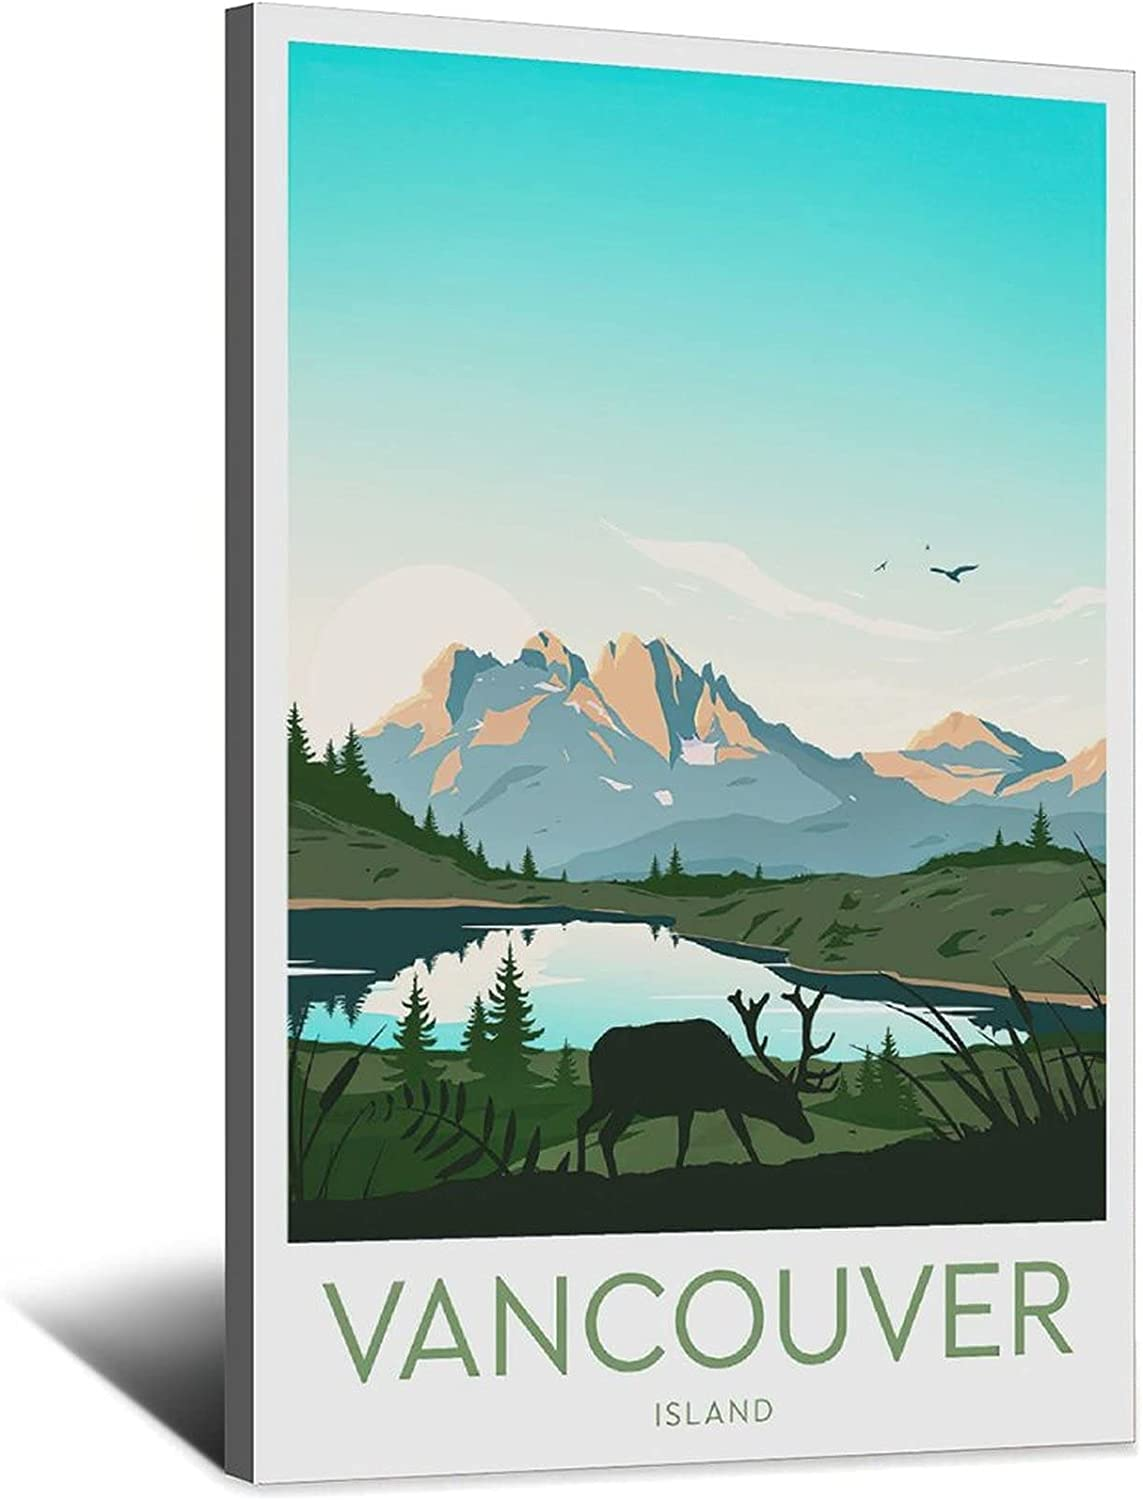 XHKJ New Shipping Free Shipping Vancouver Island NEW before selling ☆ Vintage Travel Pi Art Canvas Poster